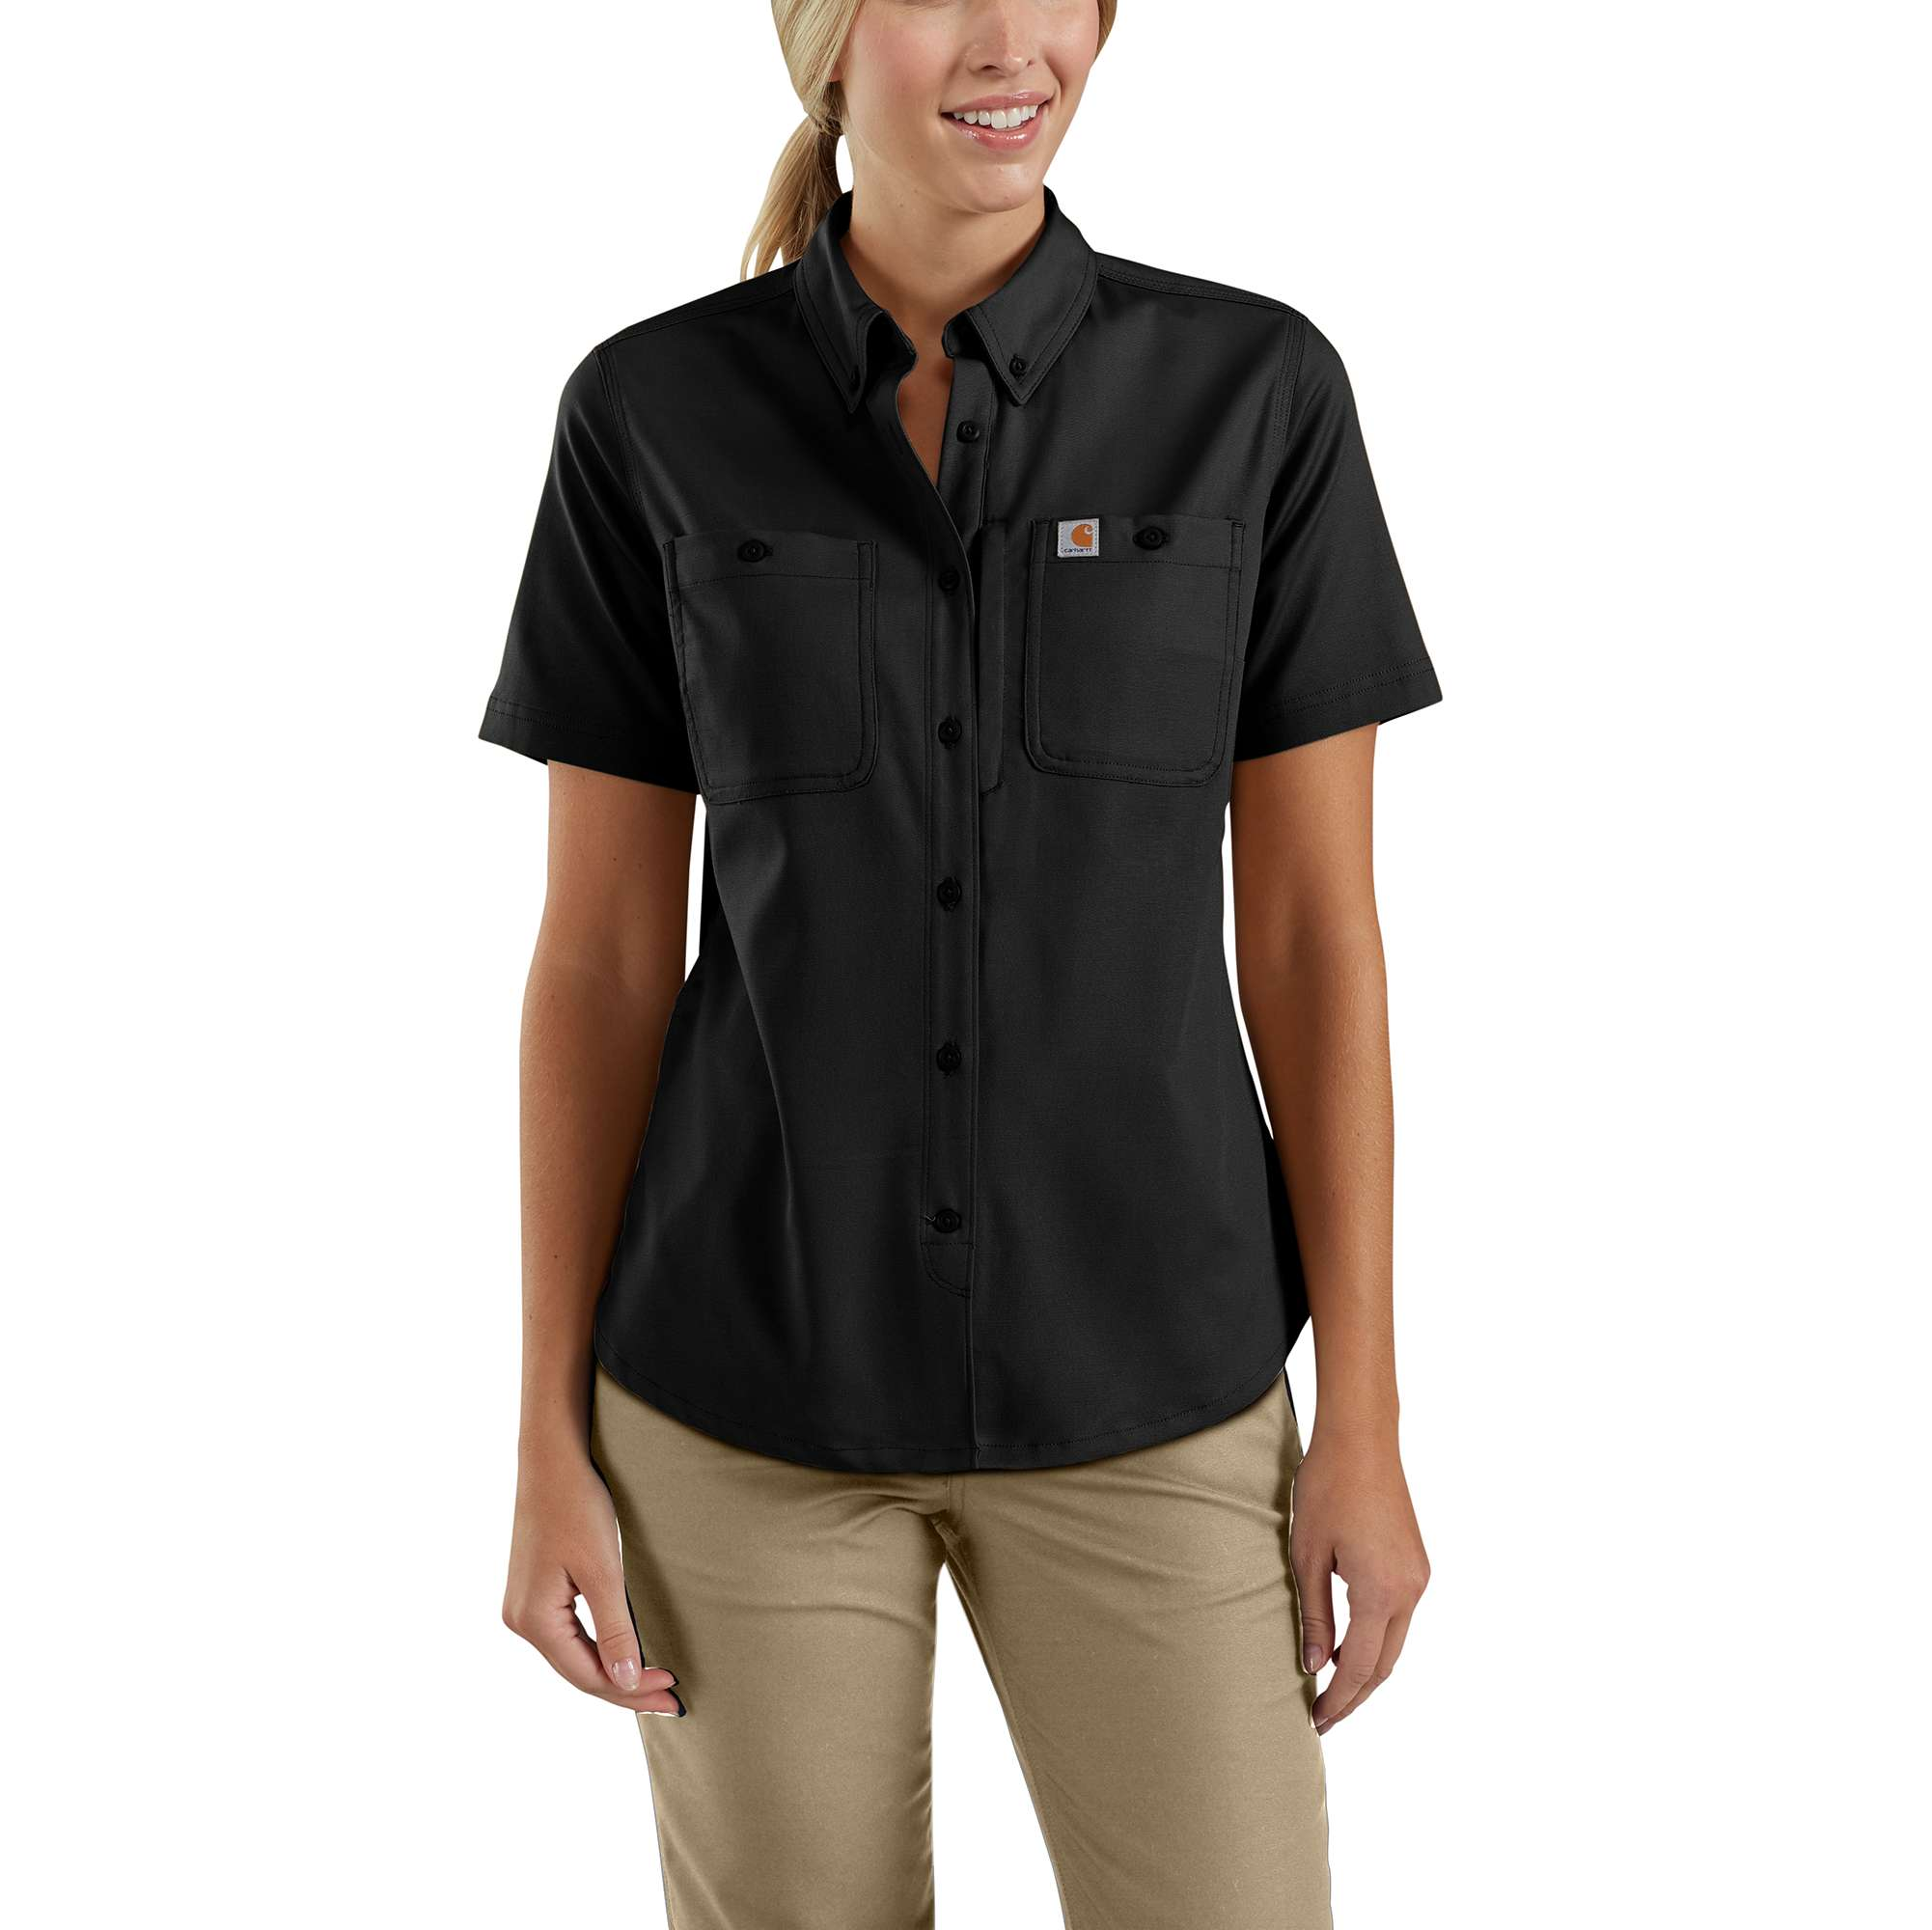 Rugged Professional™ Series Short-Sleeve Shirt - Women